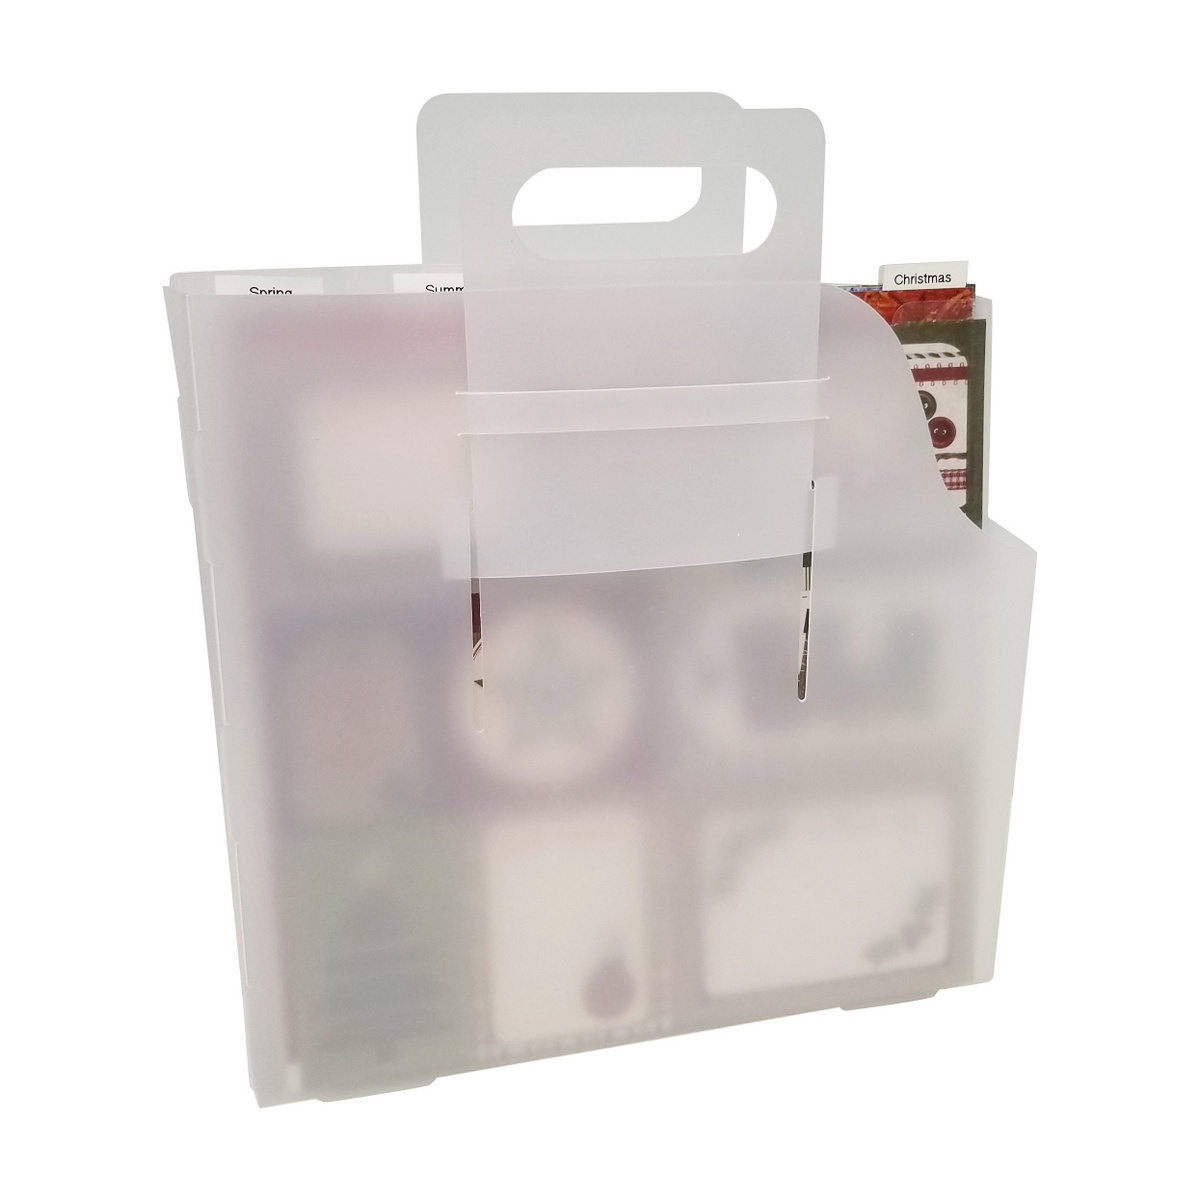 12x12 Paper Organization combo - carry box and divider pockets, Totally-Tiffany.com, A32, RF-XL5PK